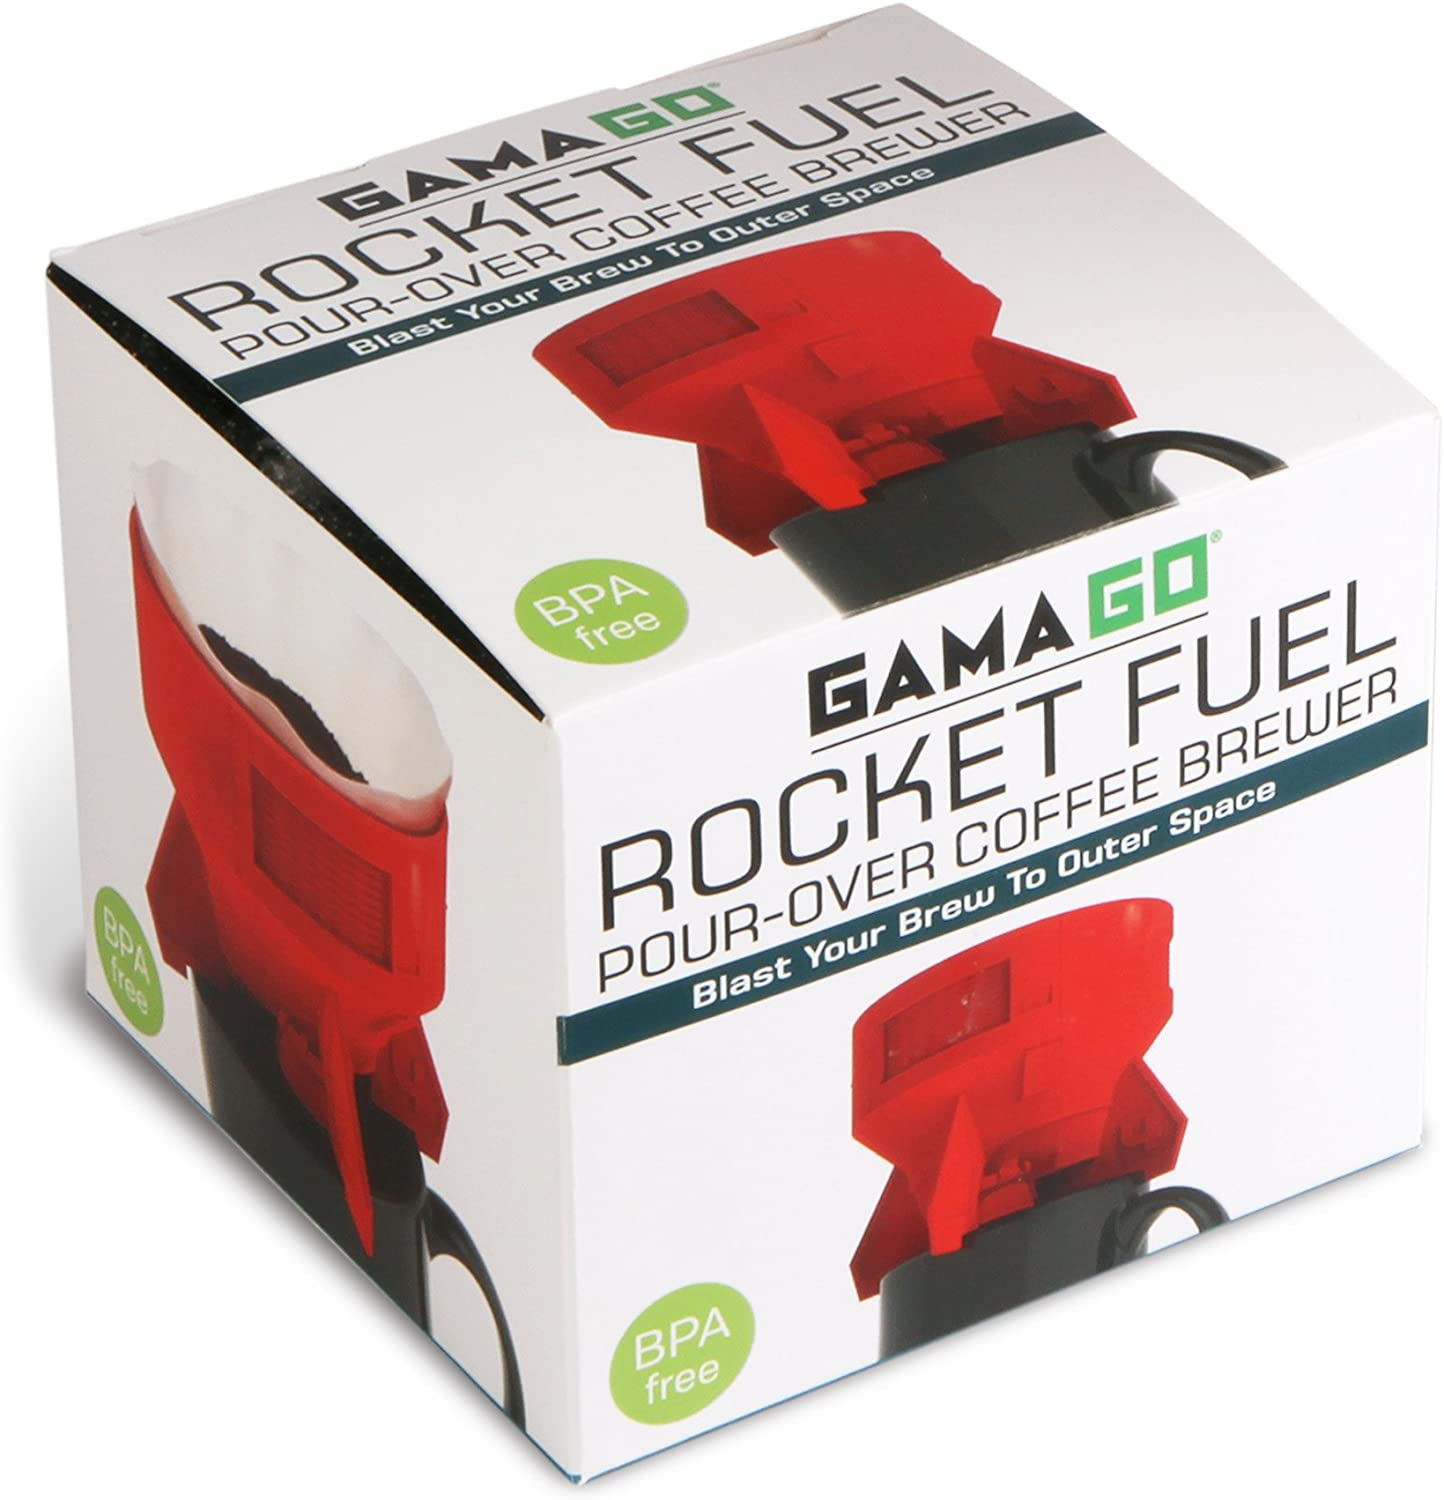 Rocket Fuel Pour Over Coffee Brewer By GAMAGO